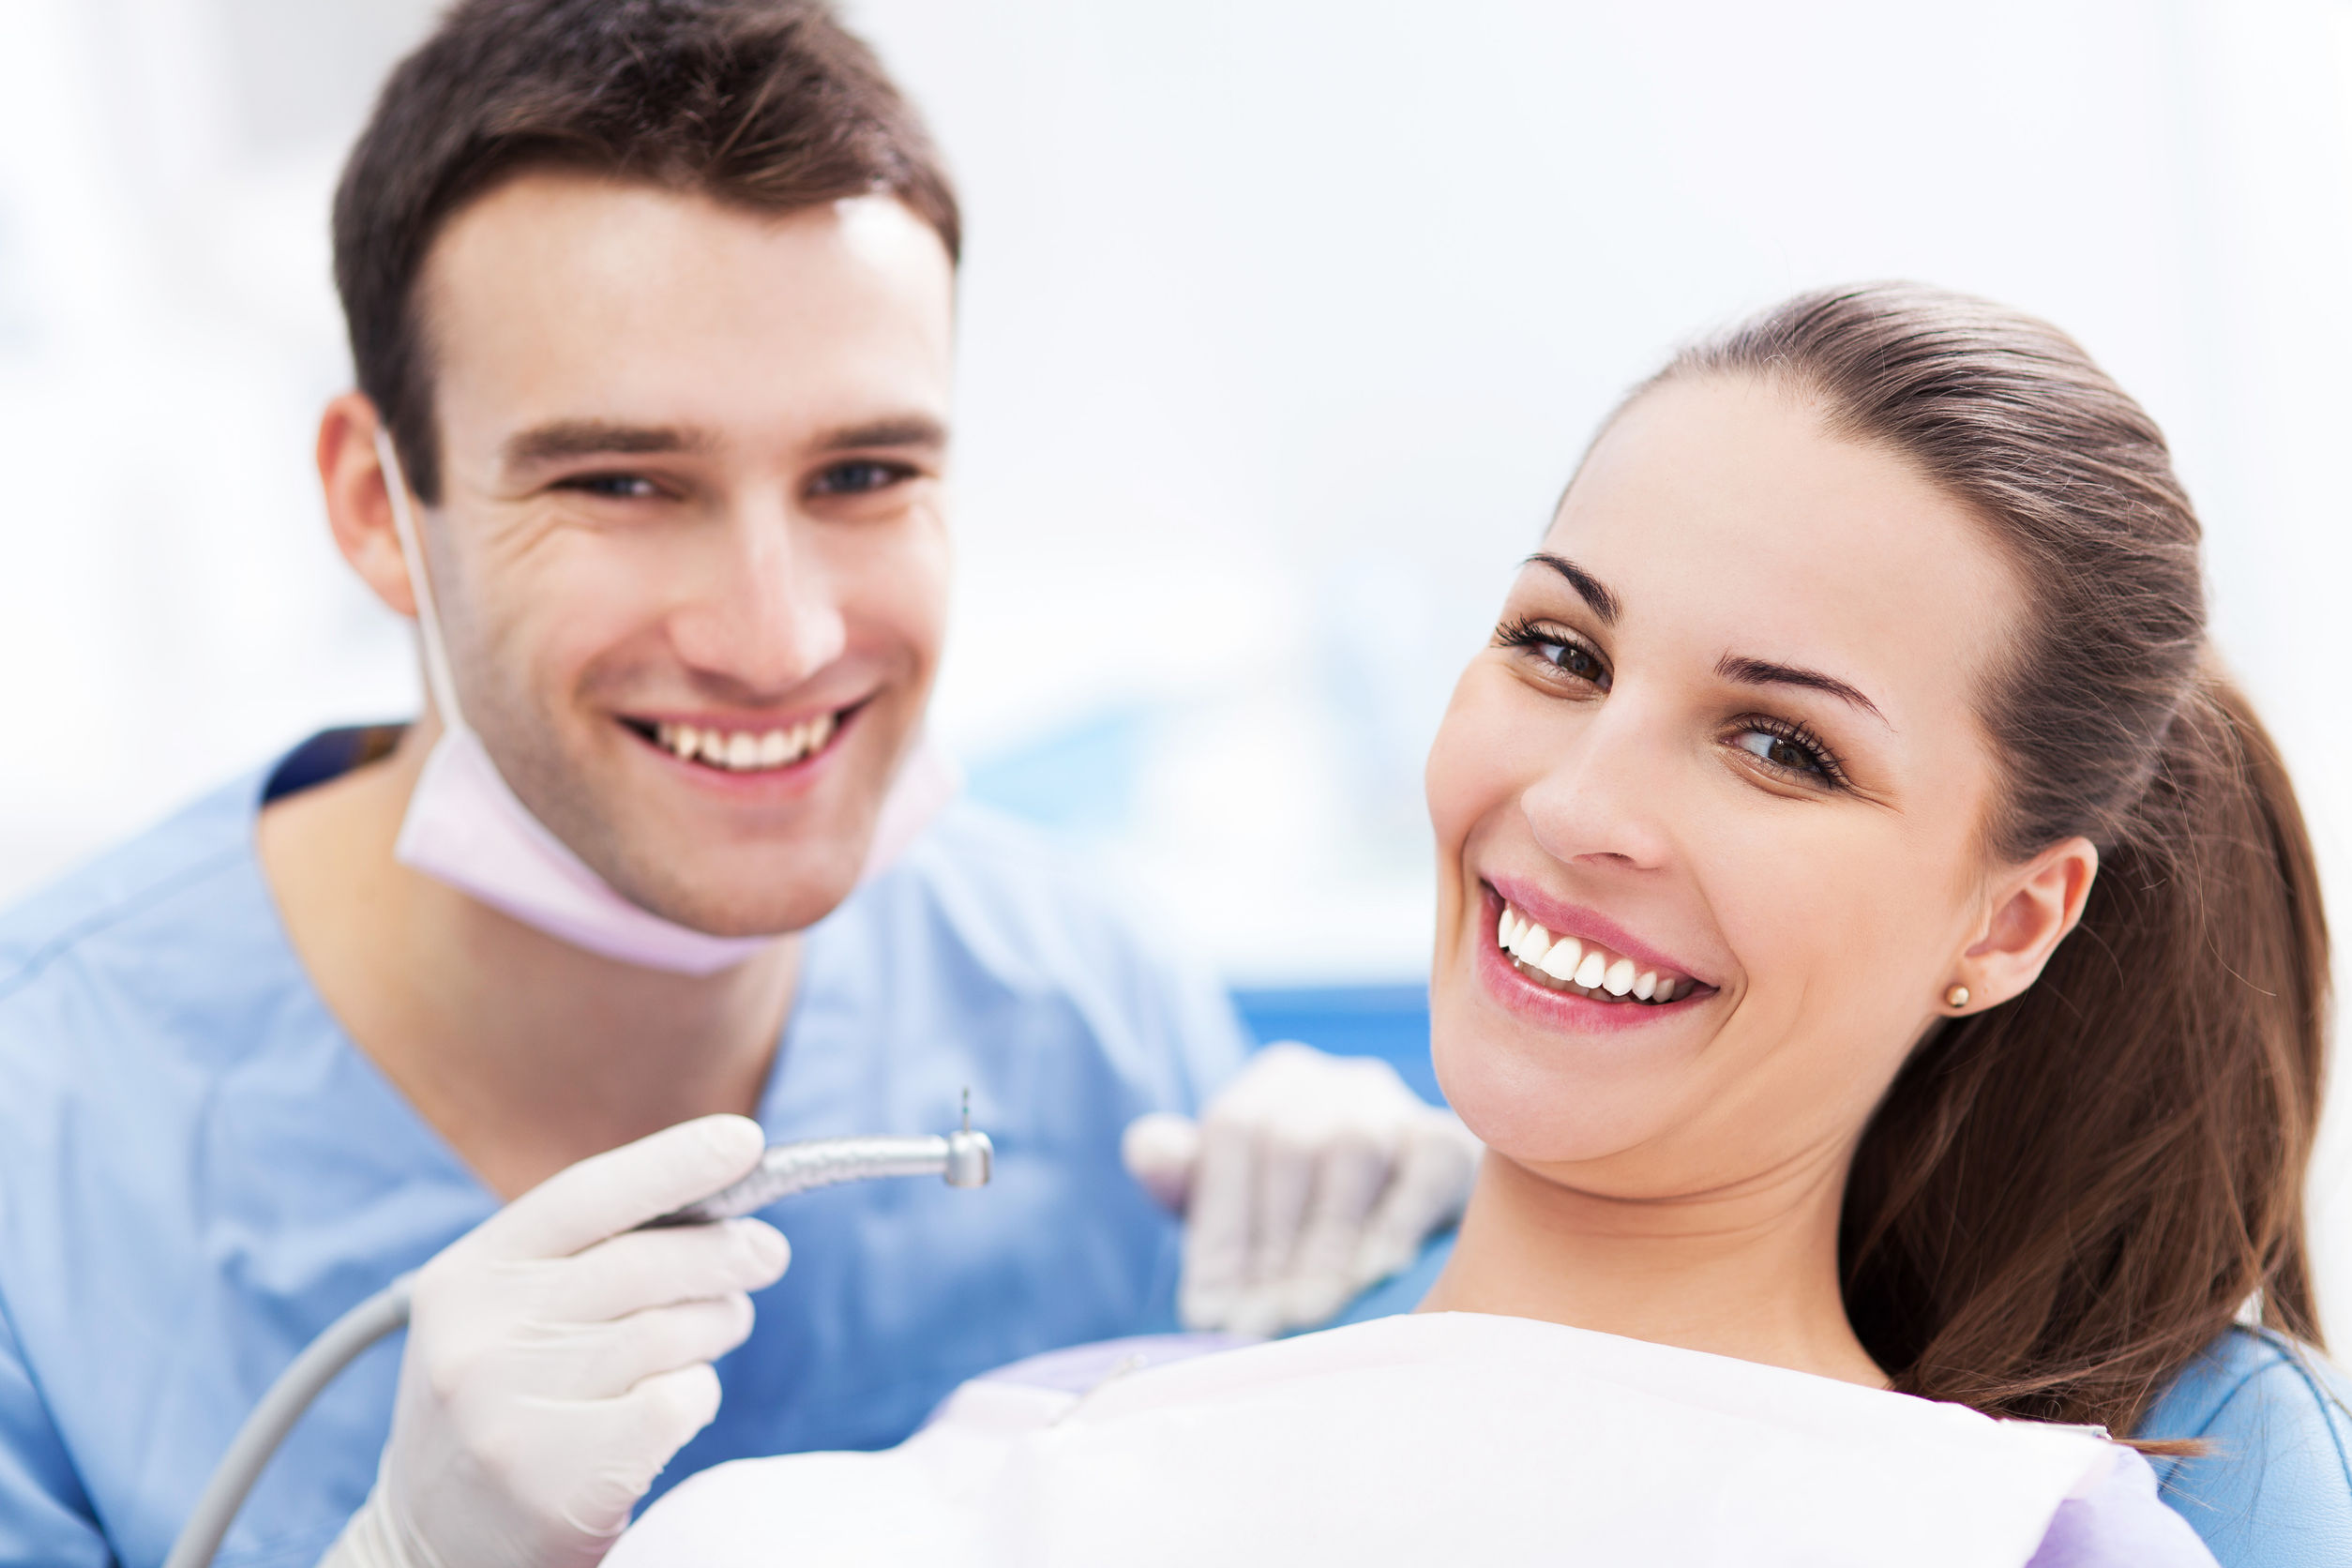 Where can I find a cosmetic dentist in Burlington?